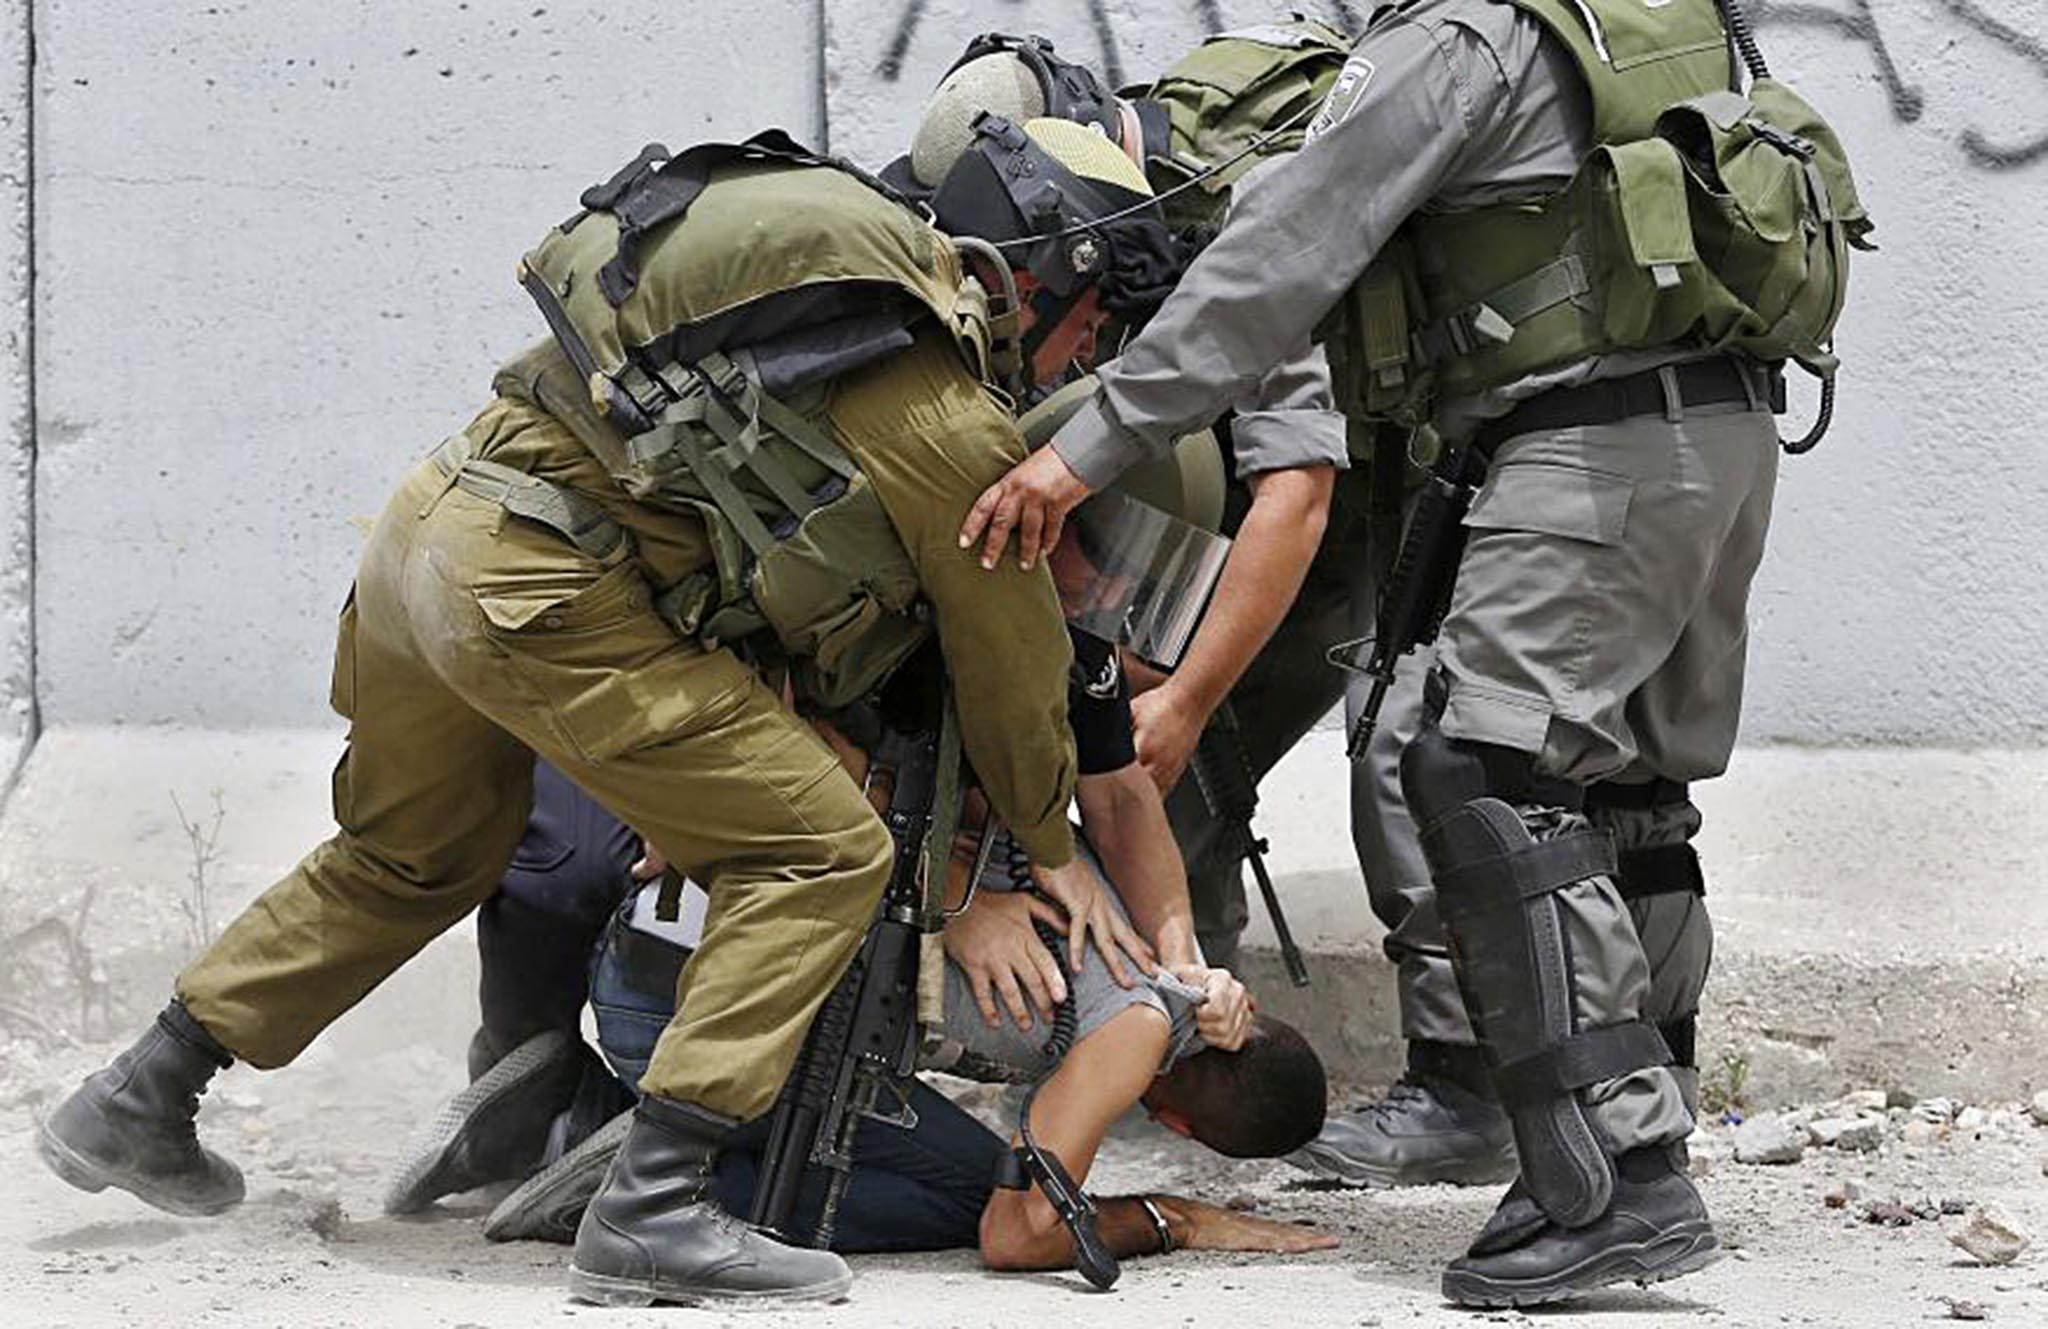 "sraeli soldiers and border police detain a Palestinian during a protest in solidarity with prisoners on hunger strike, at Qalandia checkpoint near the West Bank city of Ramallah...Israeli soldiers and border police detain a Palestinian during a protest in solidarity with prisoners on hunger strike, at Qalandia checkpoint near the West Bank city of Ramallah June 5, 2014. Some 120 Palestinians jailed without trial in Israel have been on an open-ended hunger strike, eating only salt and drinking water, since April 24 to demand an end to so-called ""administrative detention"". REUTERS/Mohamad Torokman (WEST"